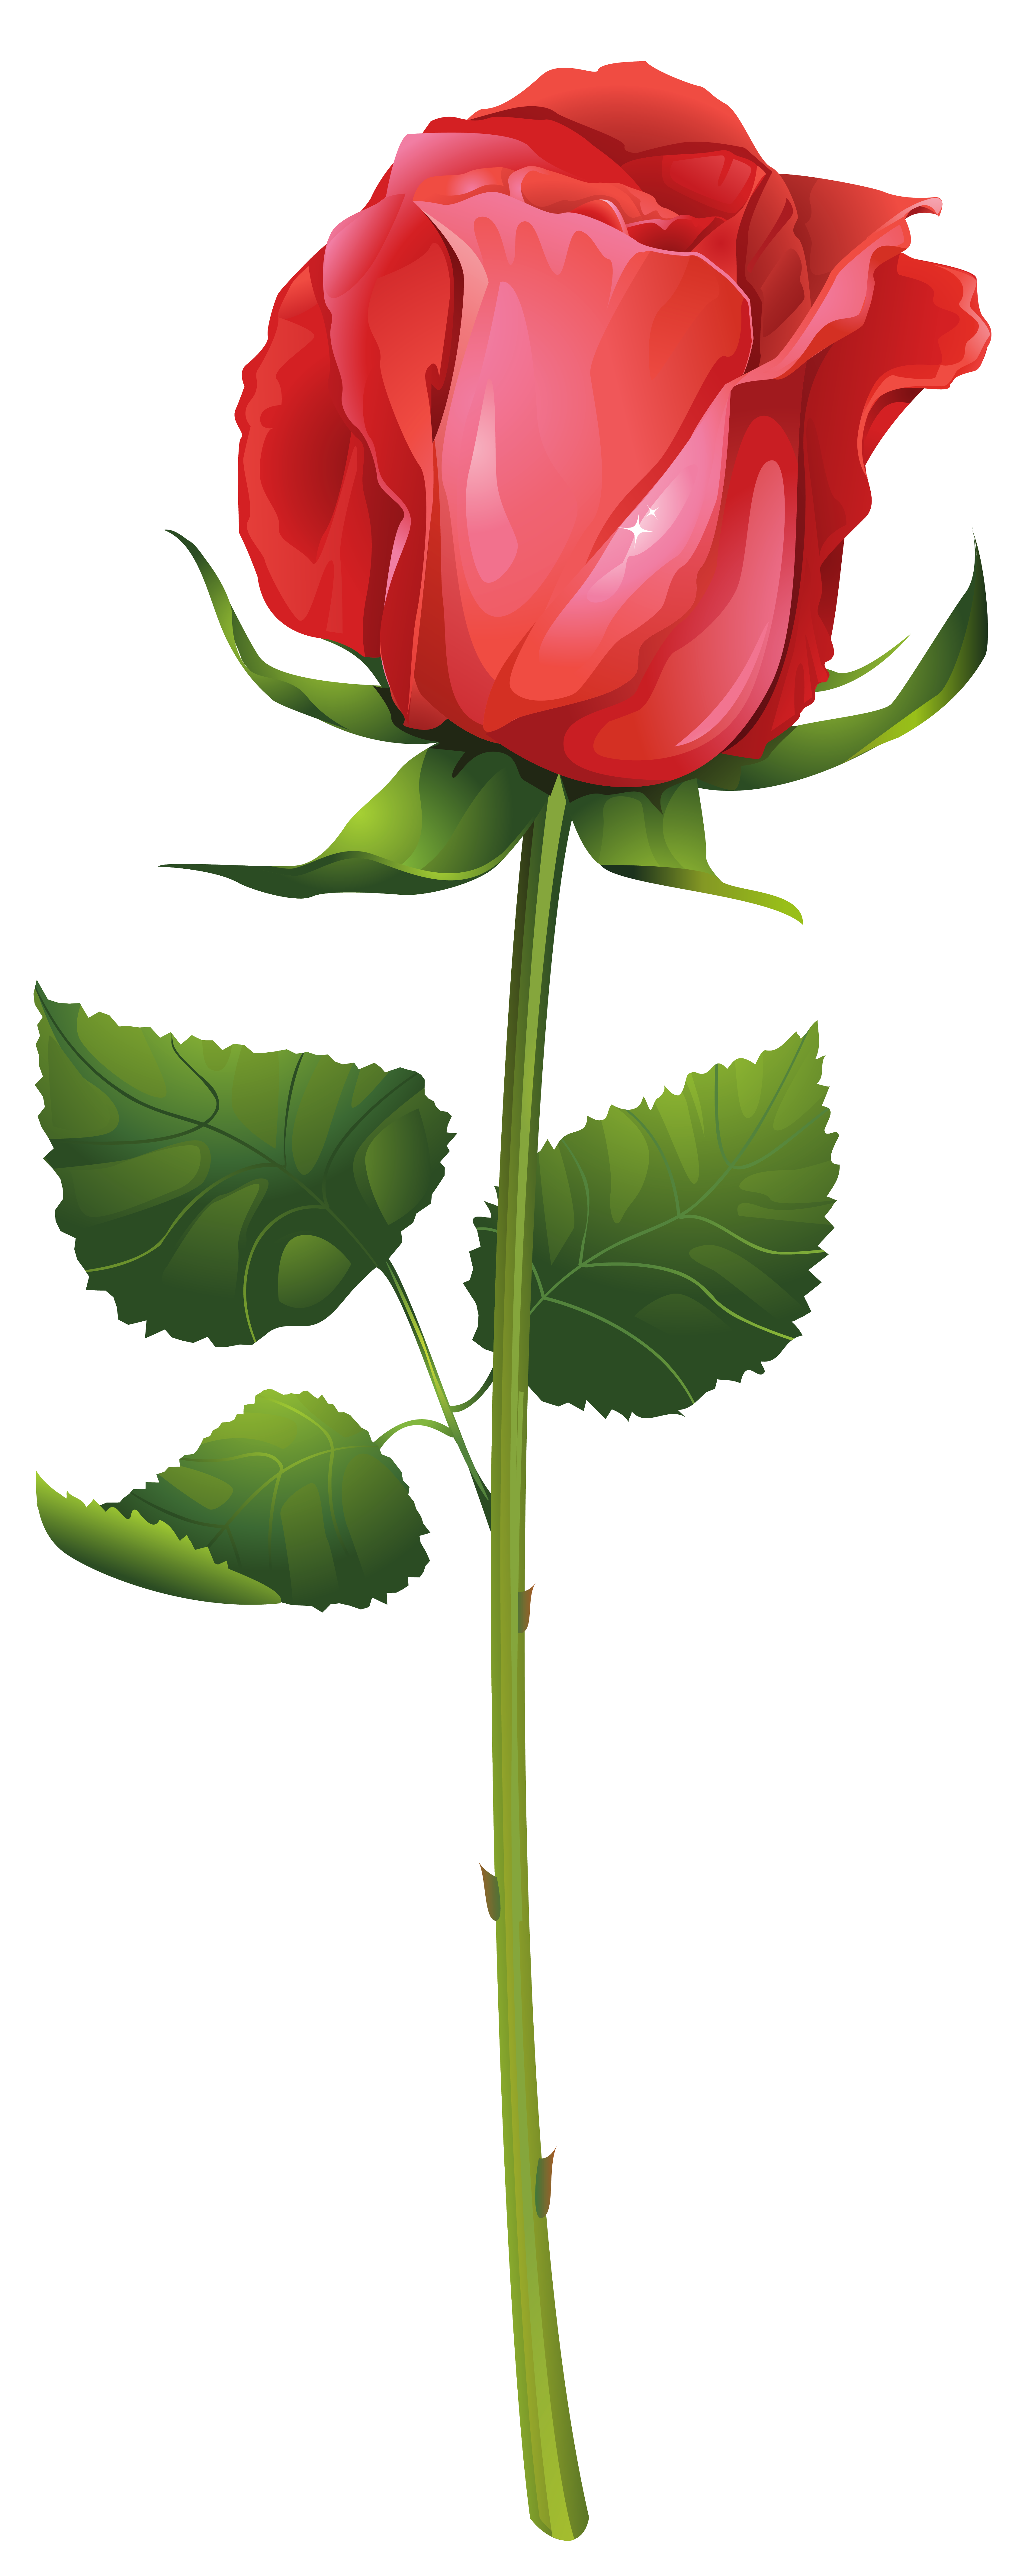 Rose with stem clipart clipart royalty free stock Rose Stem Clipart   Free download best Rose Stem Clipart on ... clipart royalty free stock